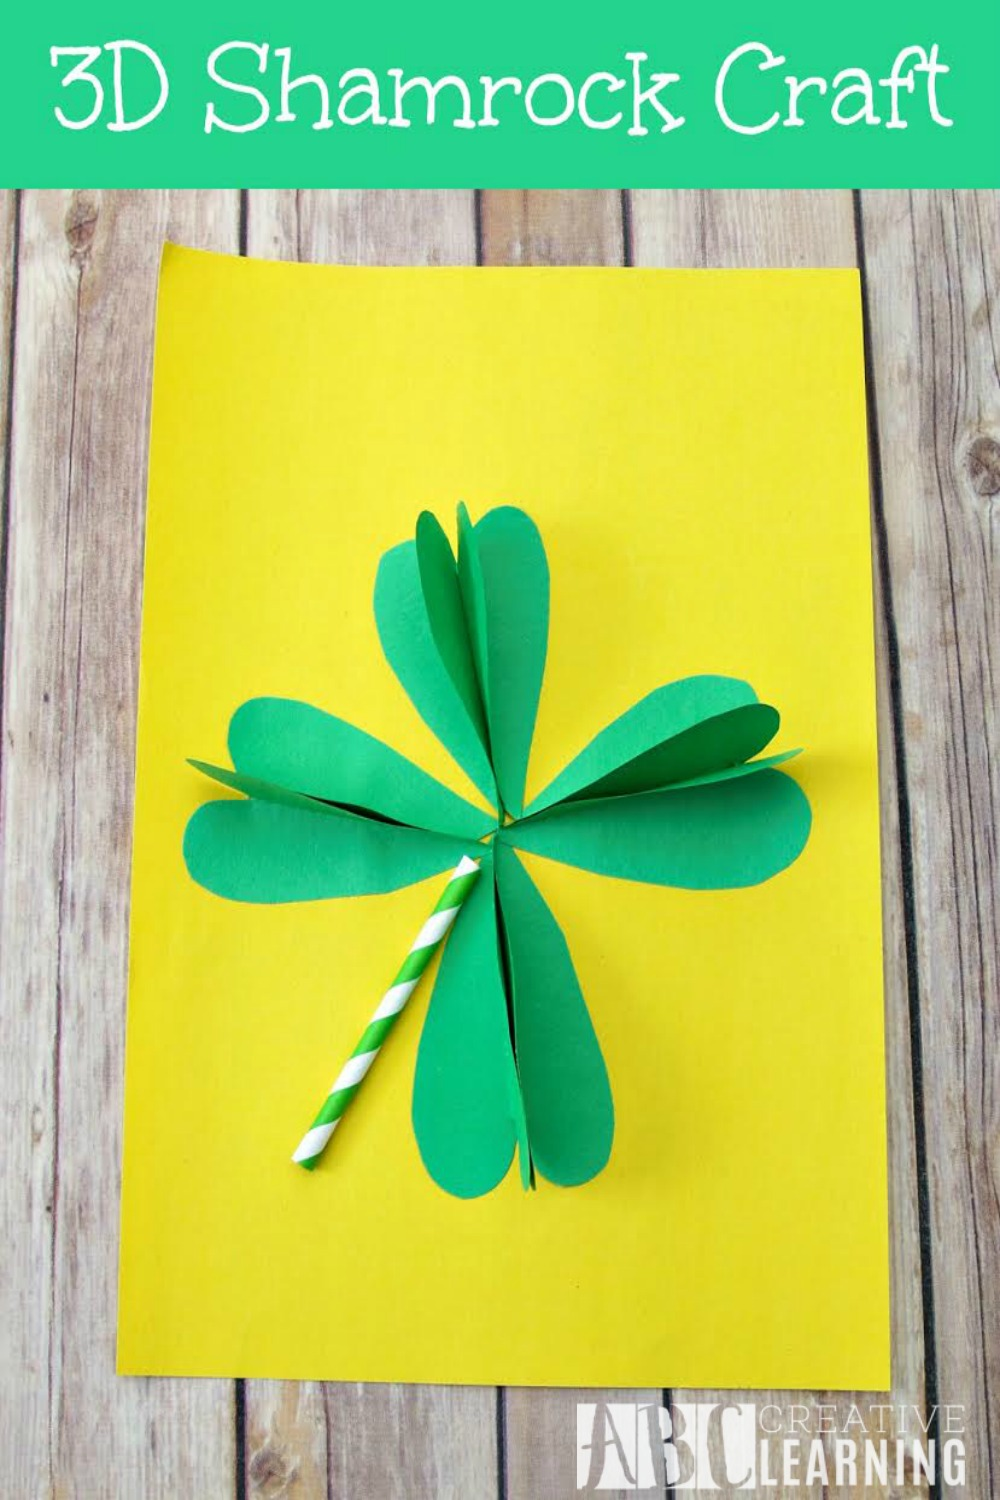 3D Shamrock Crafts